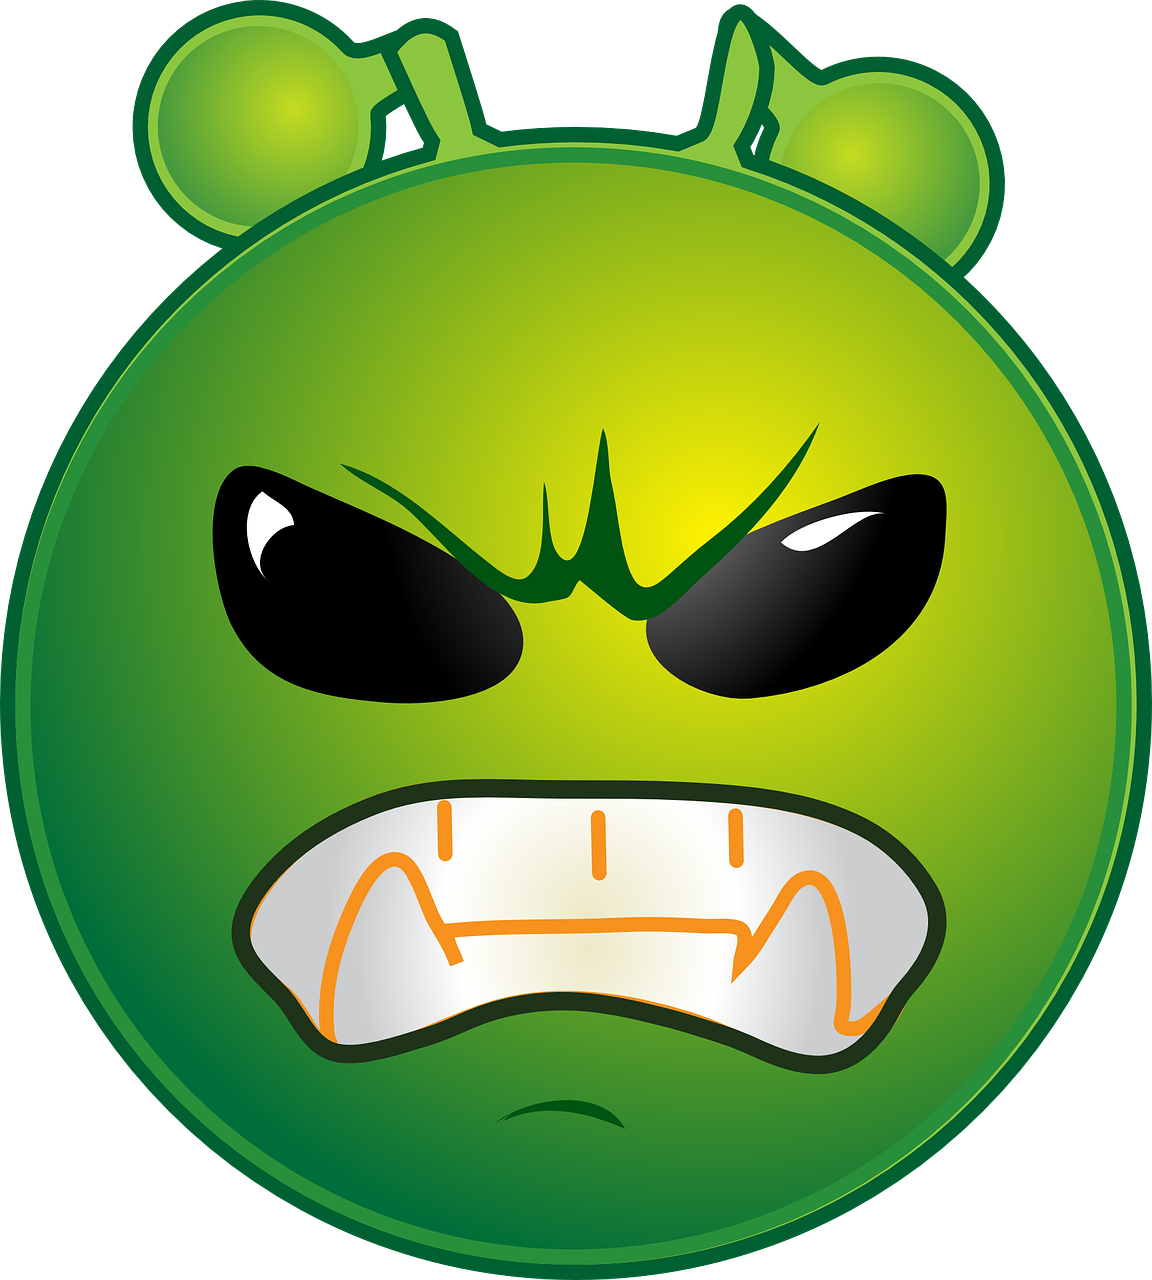 vector transparent download Anger clipart furious. Free image on pixabay